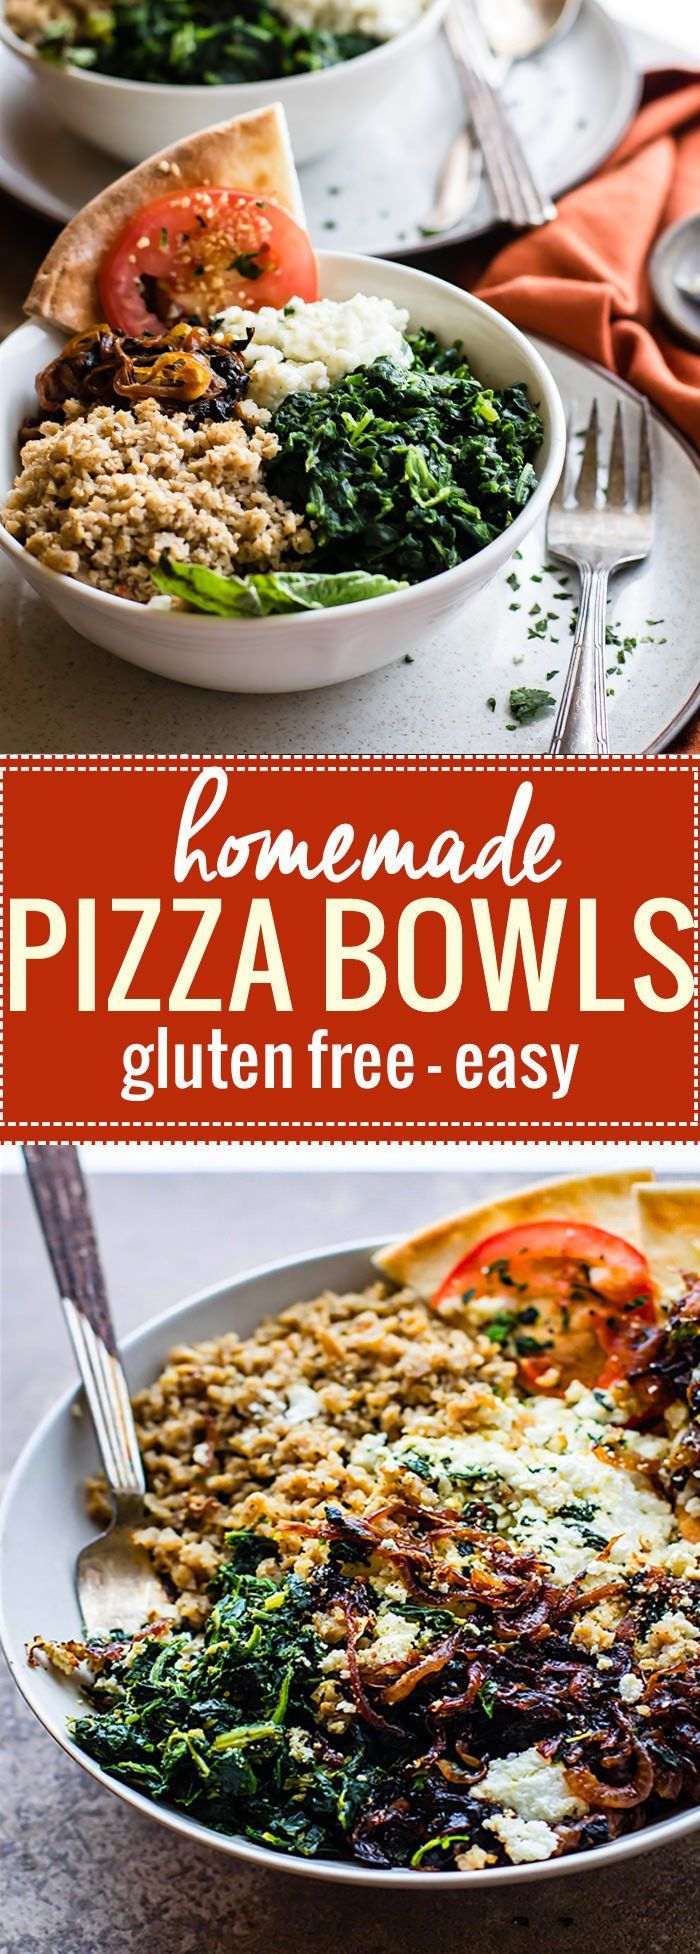 Gluten Free Homemade Pizza Bowls! These Easy homemade Pizza Bowls are a super fun way to share and customize pizza. Just fill it with all your favorite gourmet pizza toppings! Caramelized onion, goat cheese, spinach, and more. Healthy, easy, delish!! http://www.cottercrunch.com /cottercrunch/.